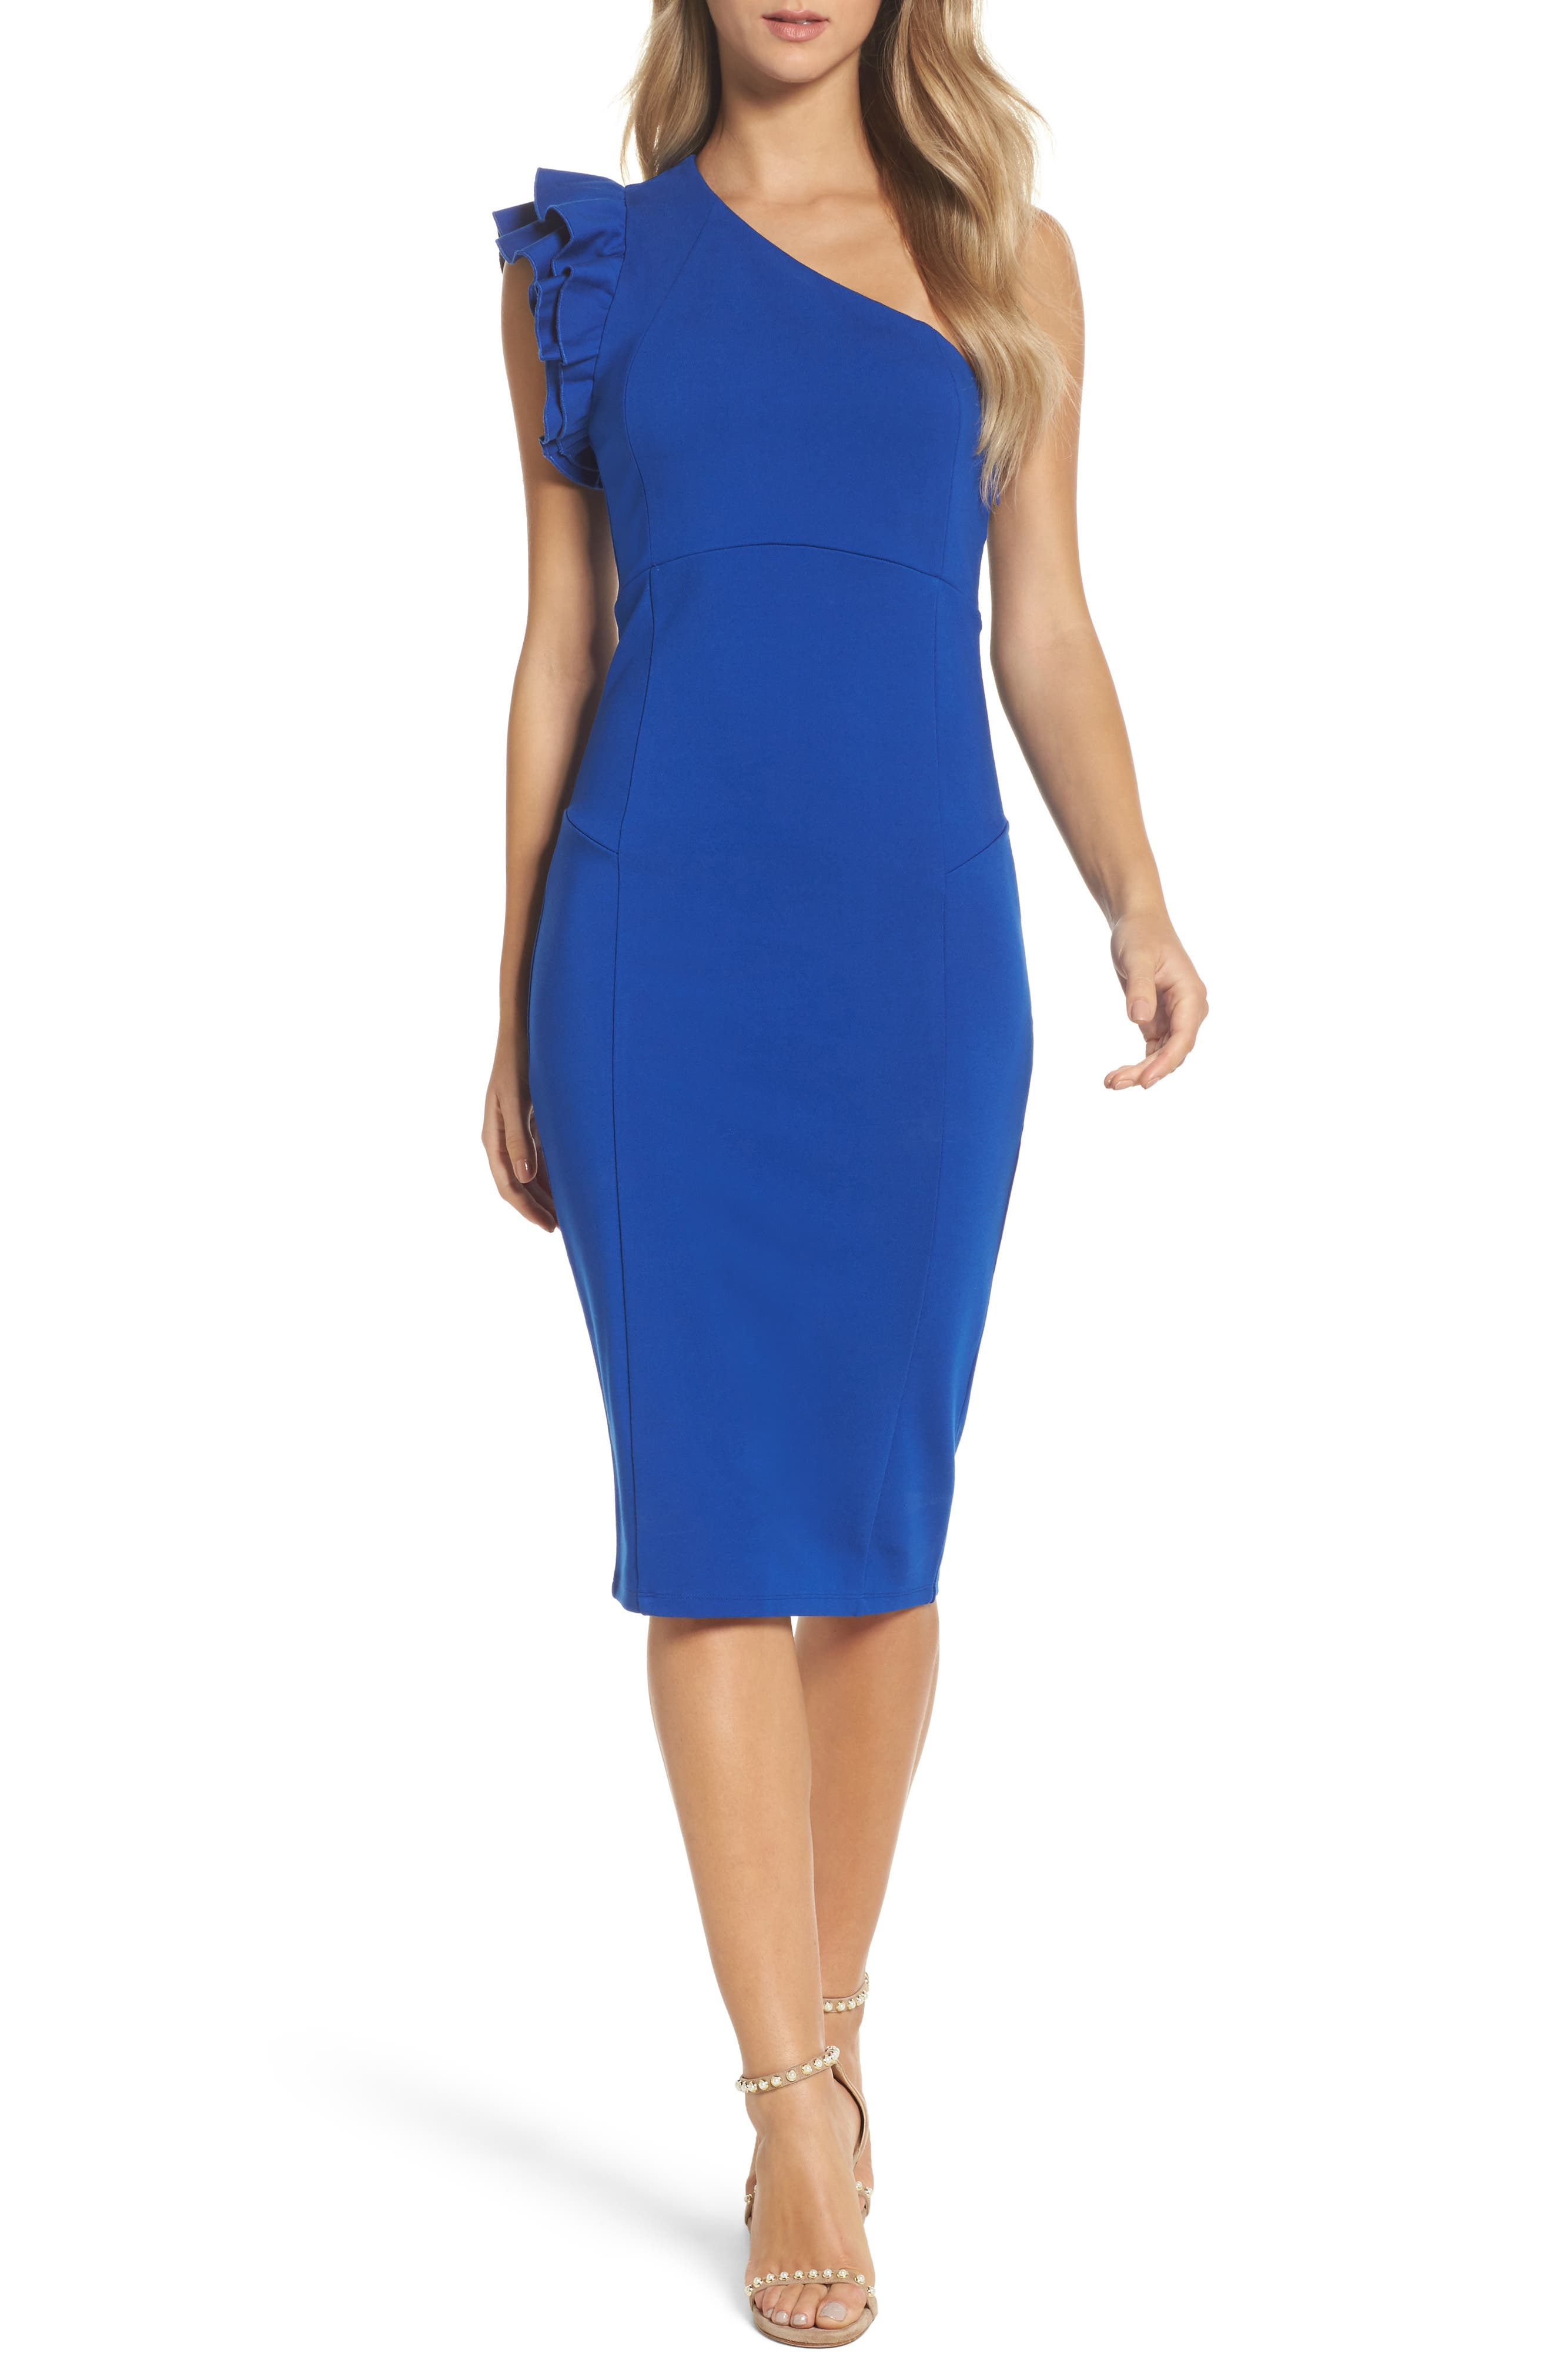 Alternate Image 1 Selected - Felicity & Coco Marilyn One-Shoulder Sheath Dress (Nordstrom Exclusive)